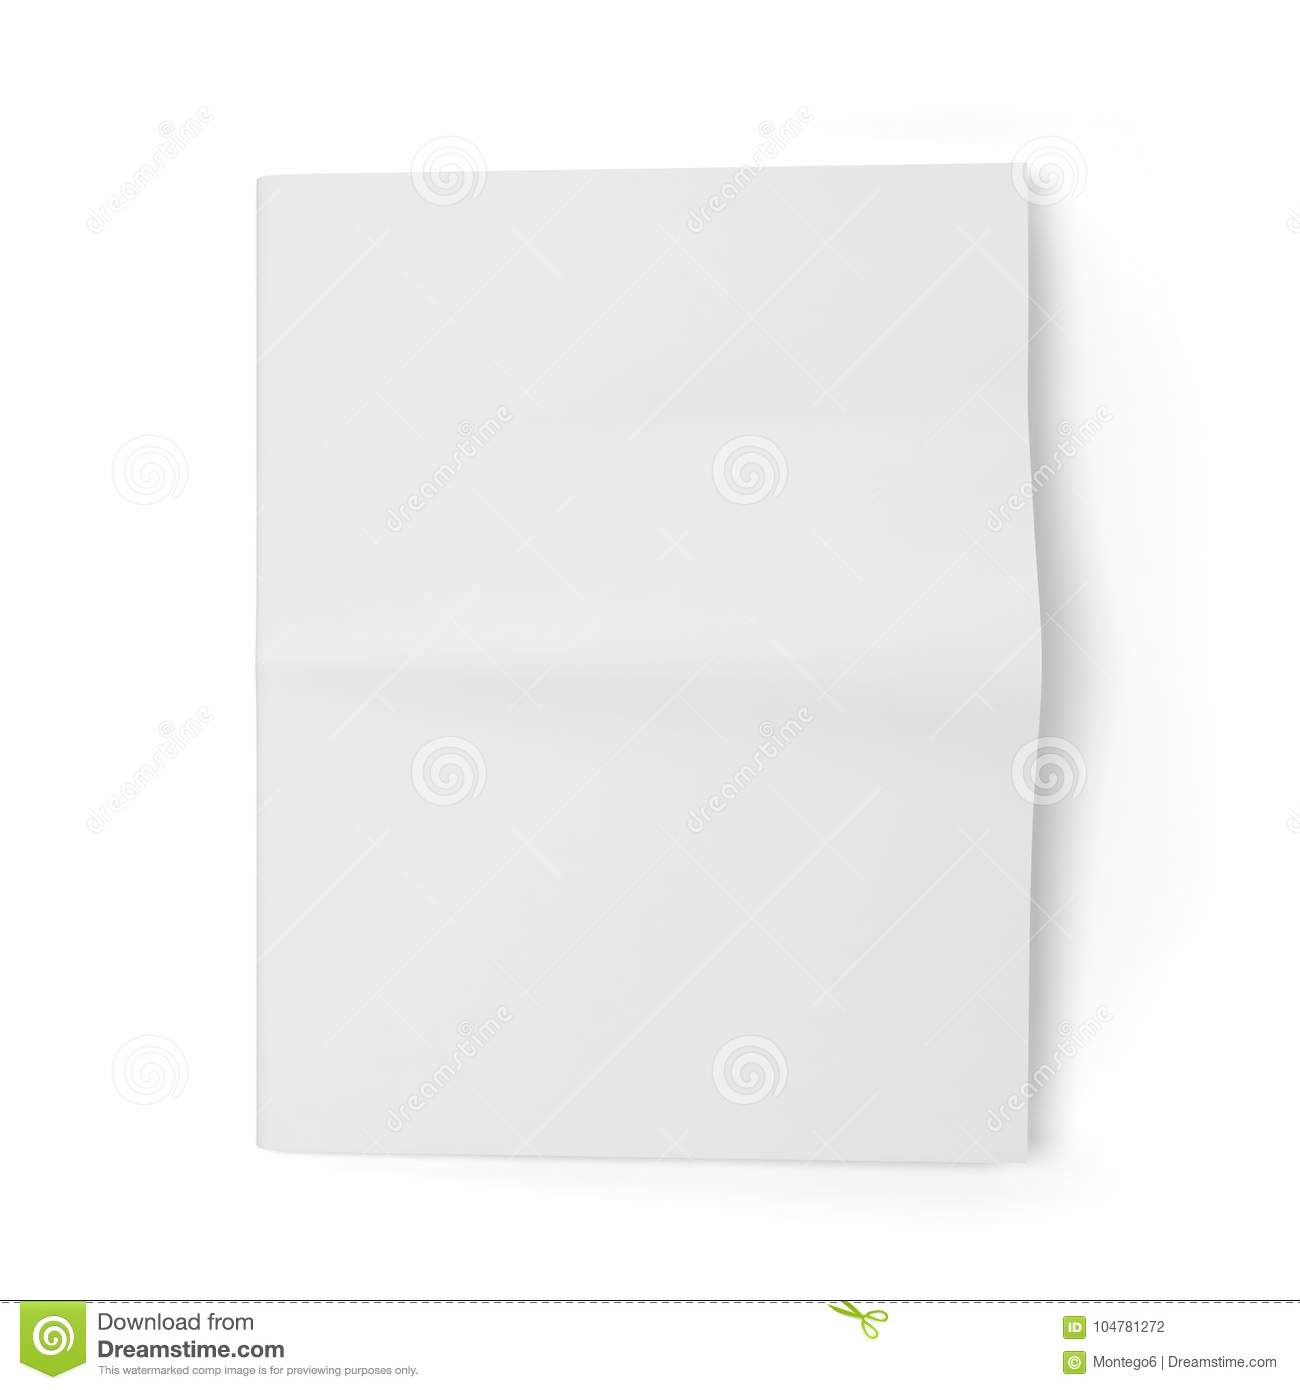 Blank Newspaper Template Stock Illustration Illustration Of Page